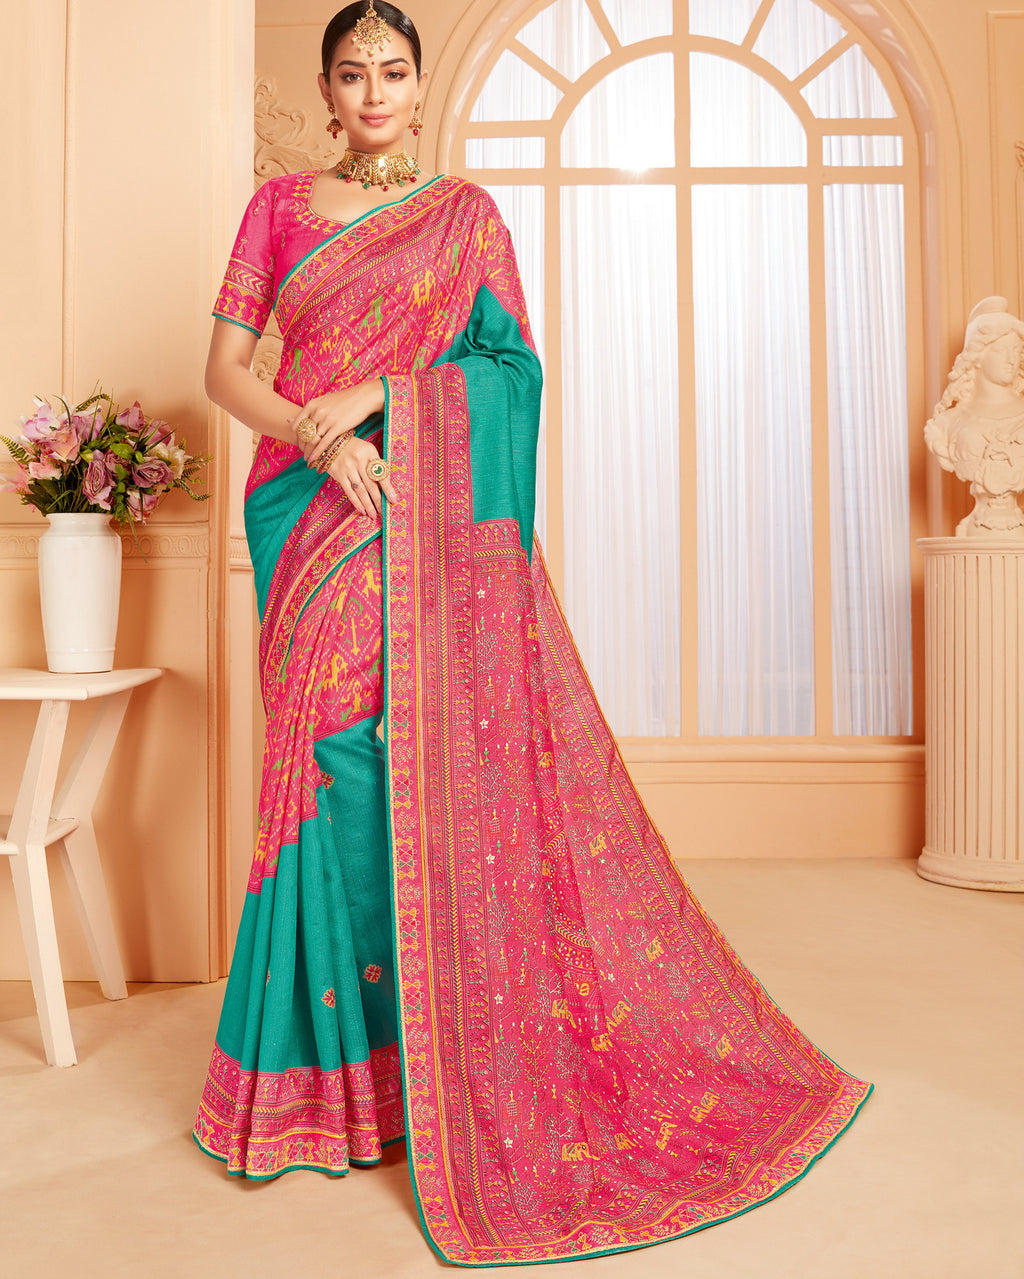 Sea Green & Pink Color Raw Silk Lovely Wedding Function Sarees NYF-4830